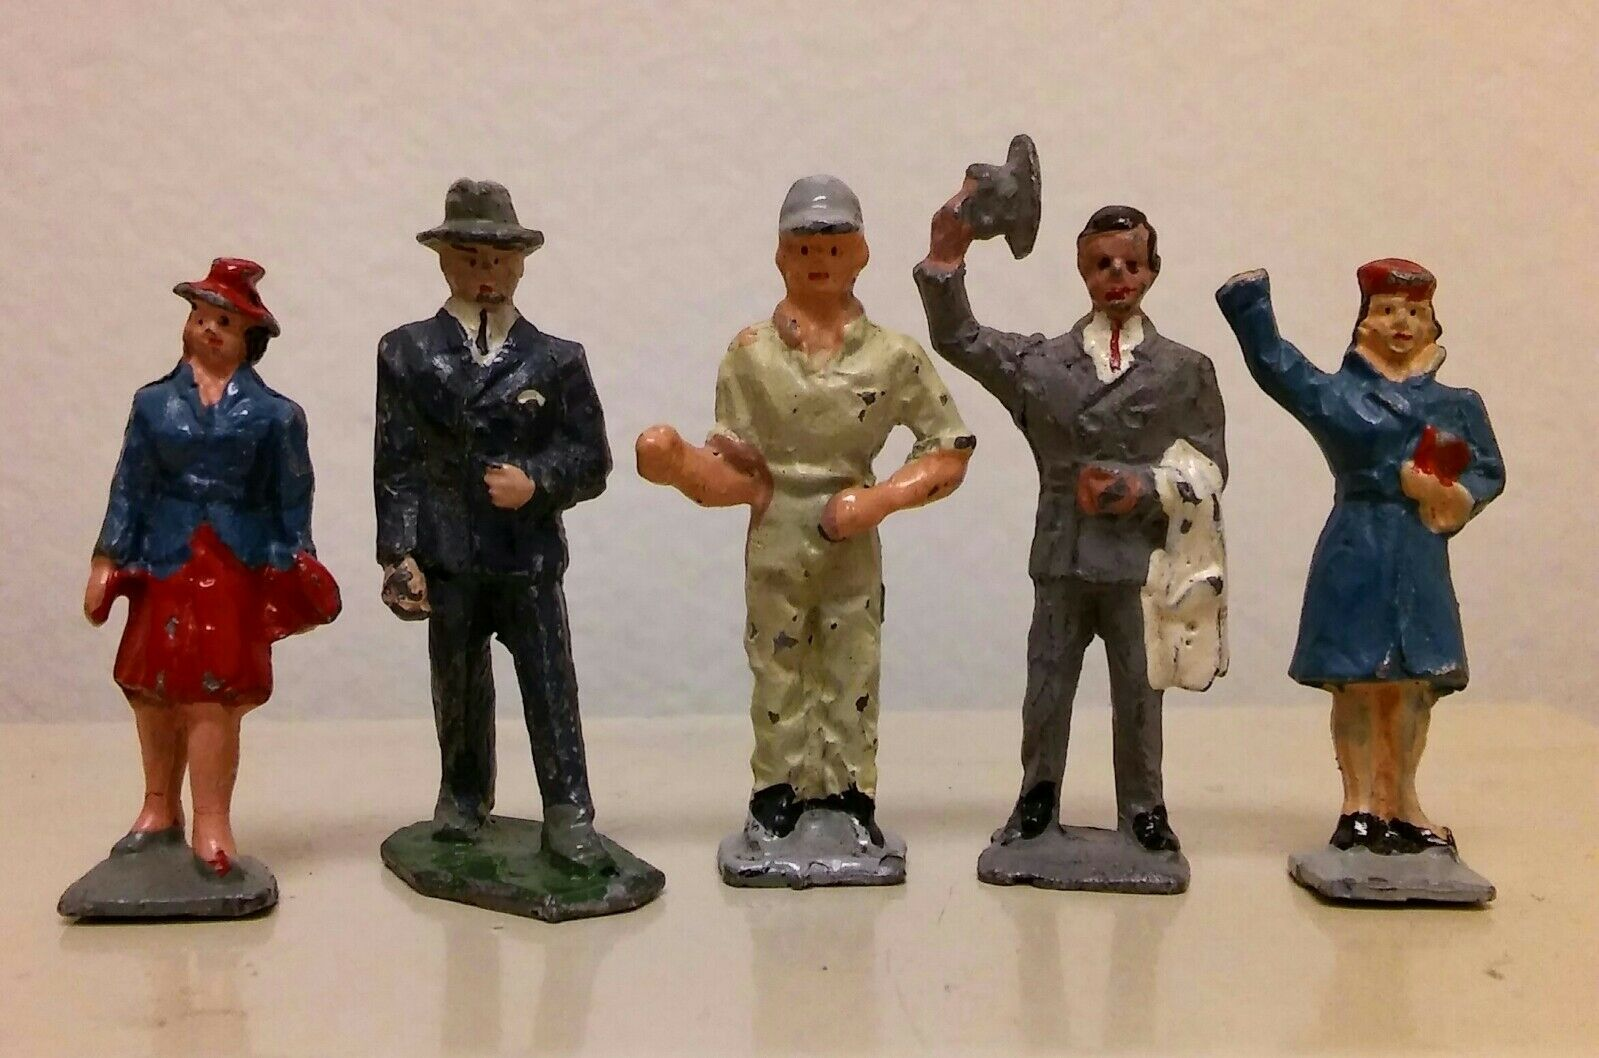 TOY PEOPLE EIRE LEAD FIGURE WOMAN MAN WORKER LOT OF 5 FIGURINE TRAIN CITY LAYOUT